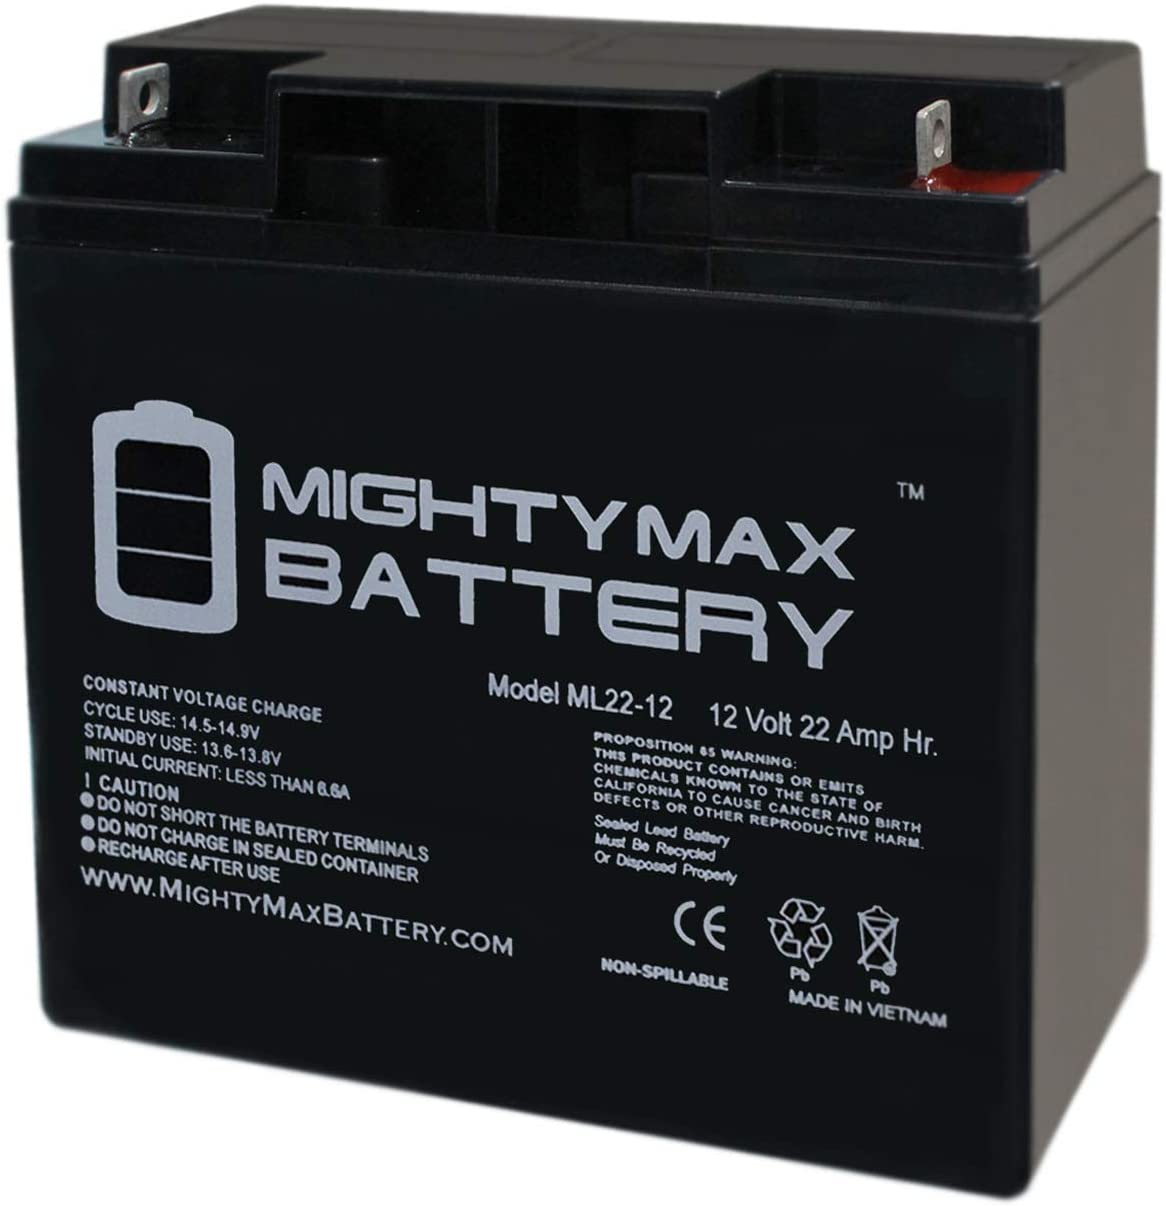 Amazon Com Mighty Max Battery 12v 22ah Replacement Battery For Die Hard Portable Jump Starter 1150 Brand Product Home Audio Theater